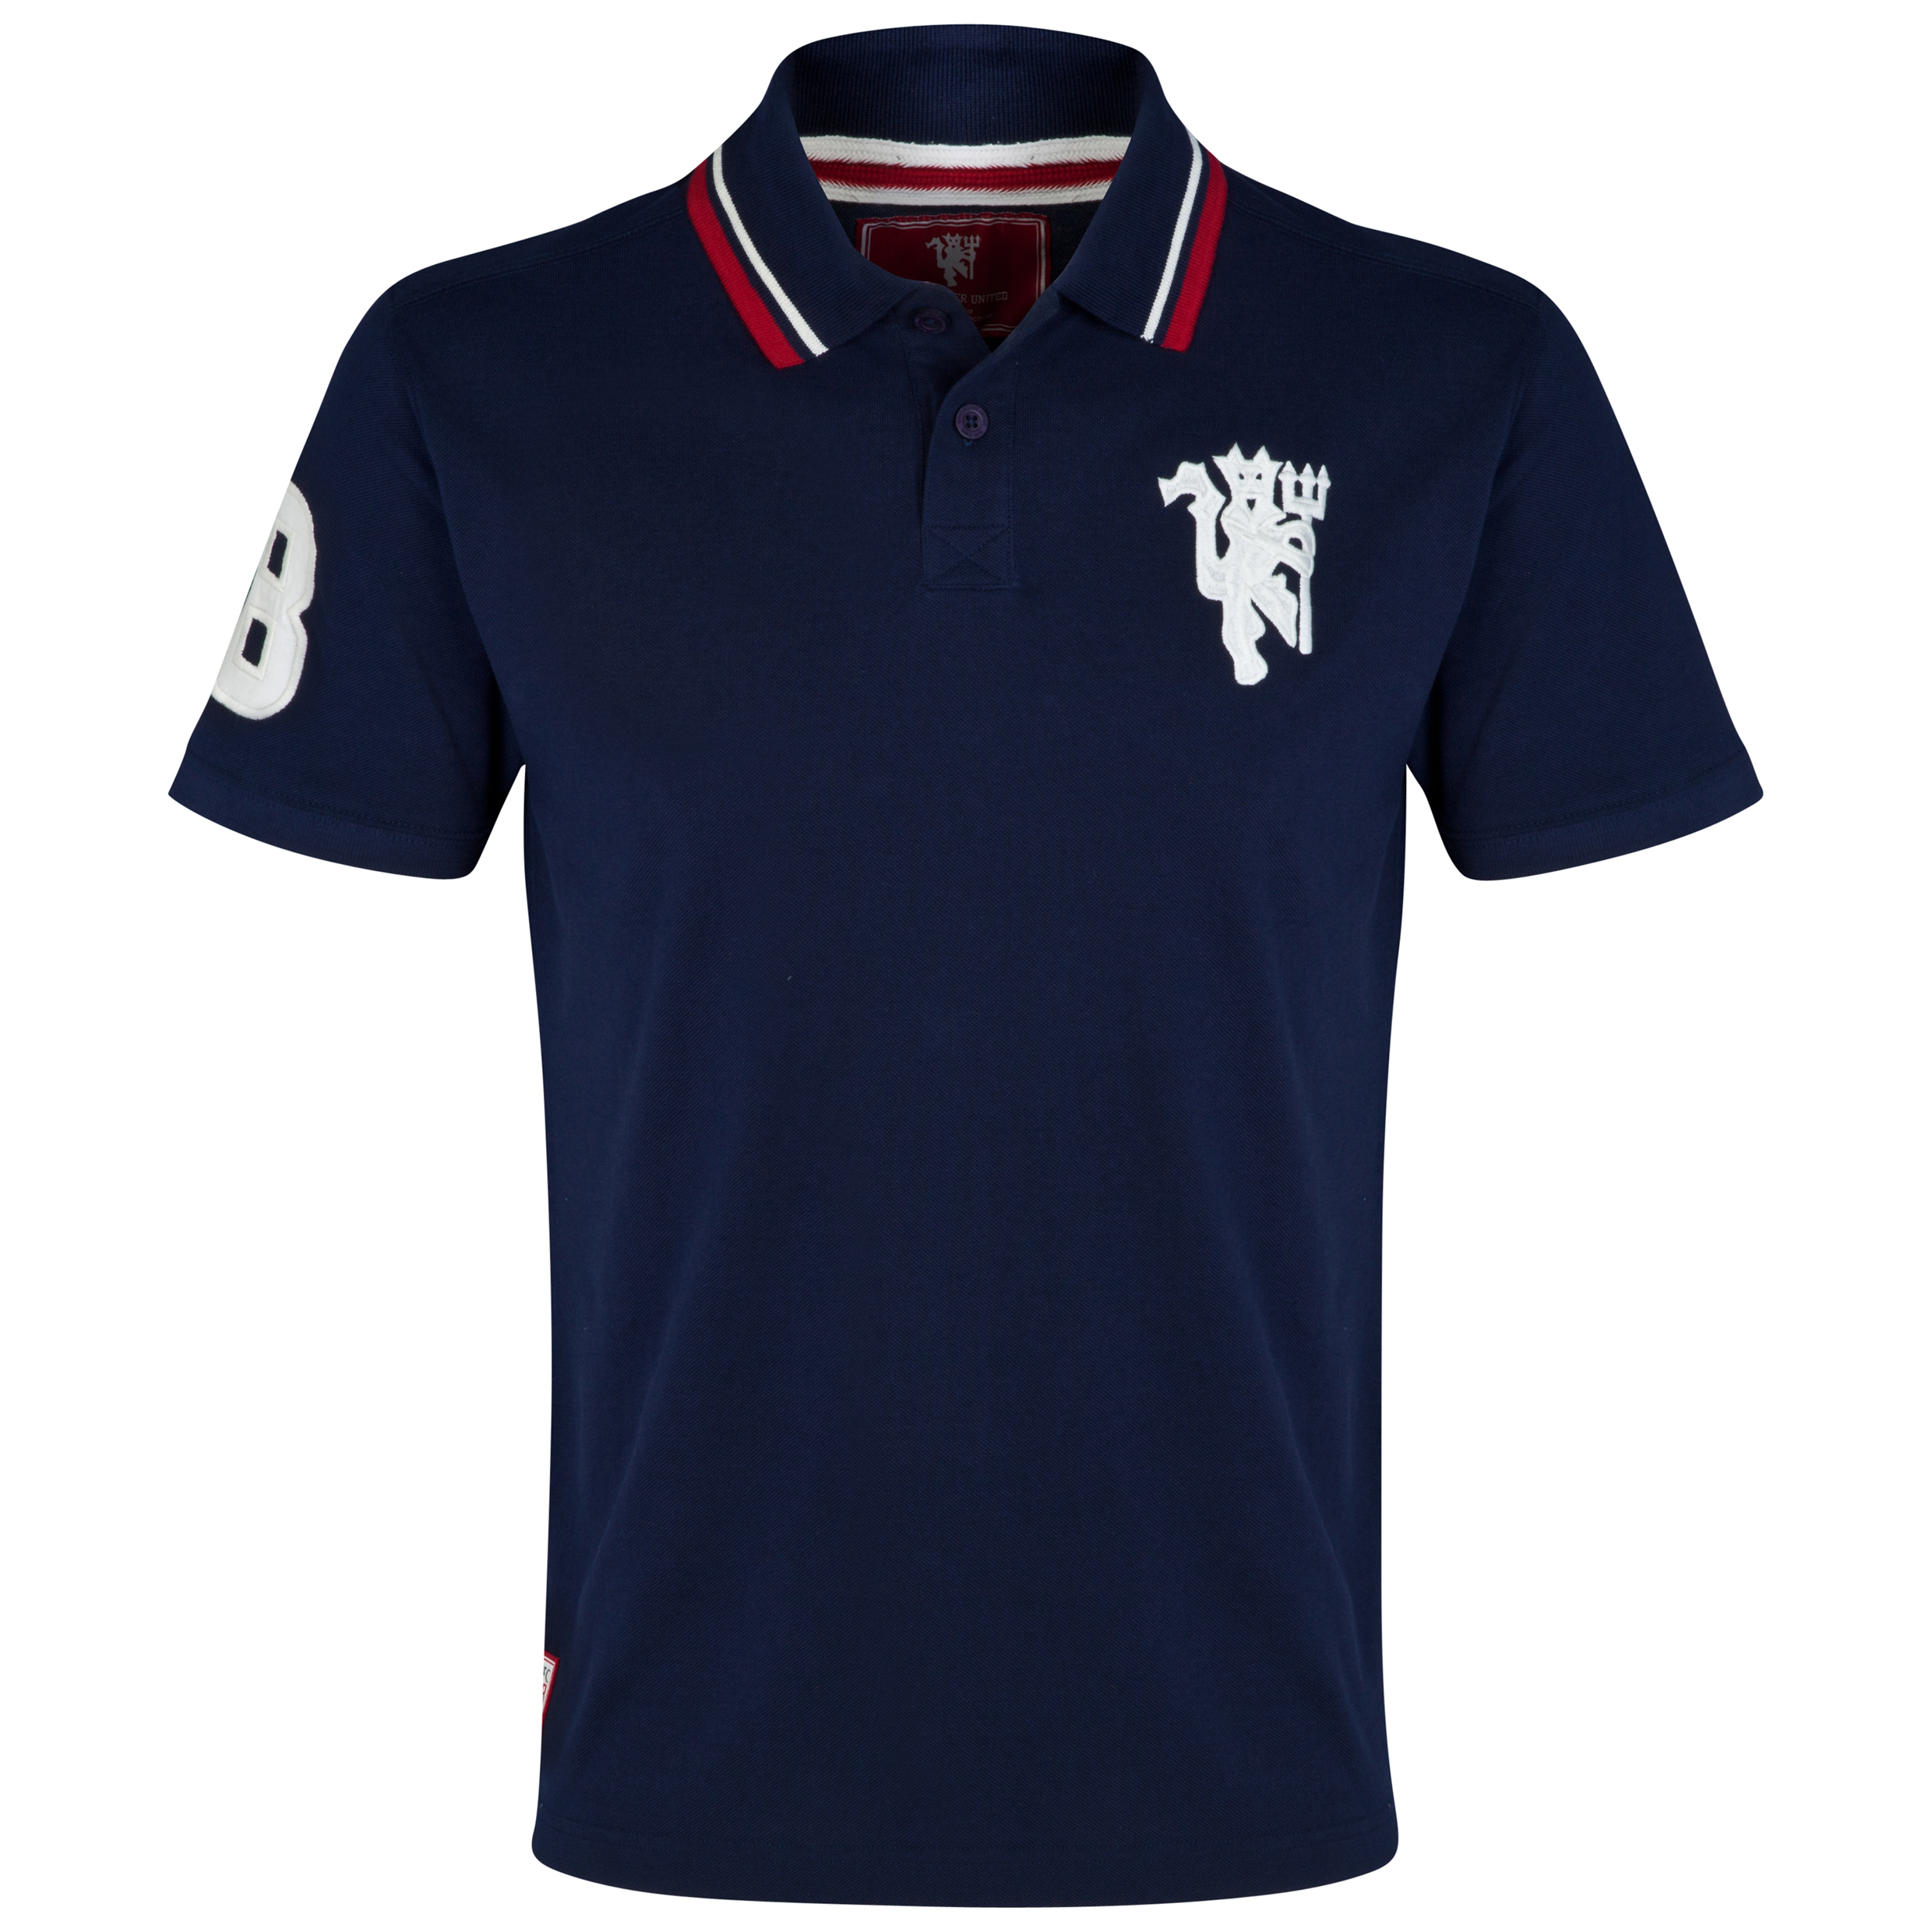 Manchester United Heritage Devil Polo Shirt - Mens Navy